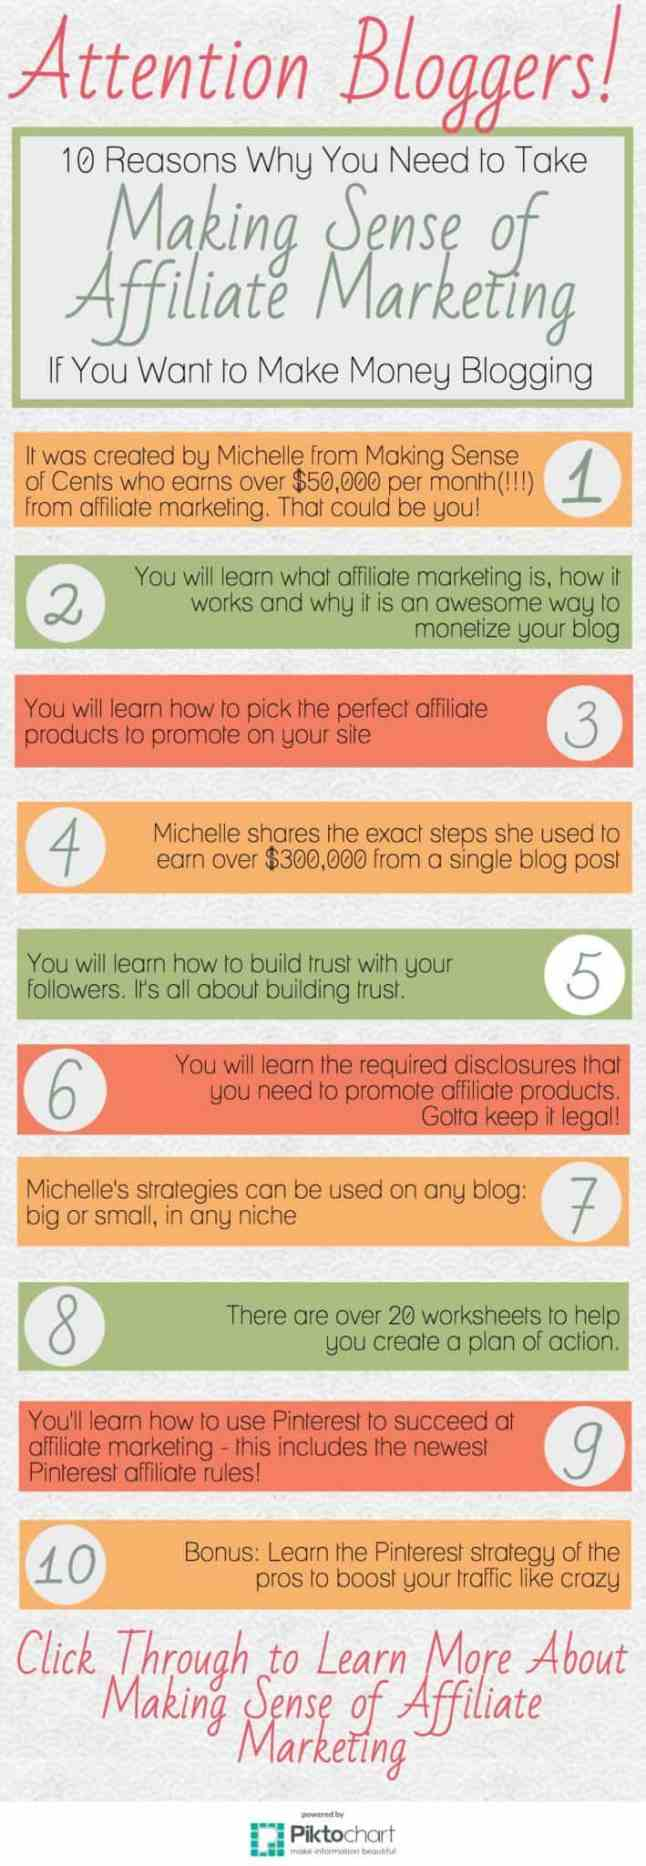 Make money blogging! All bloggers should take this course. Making Sense of Affiliate Marketing.